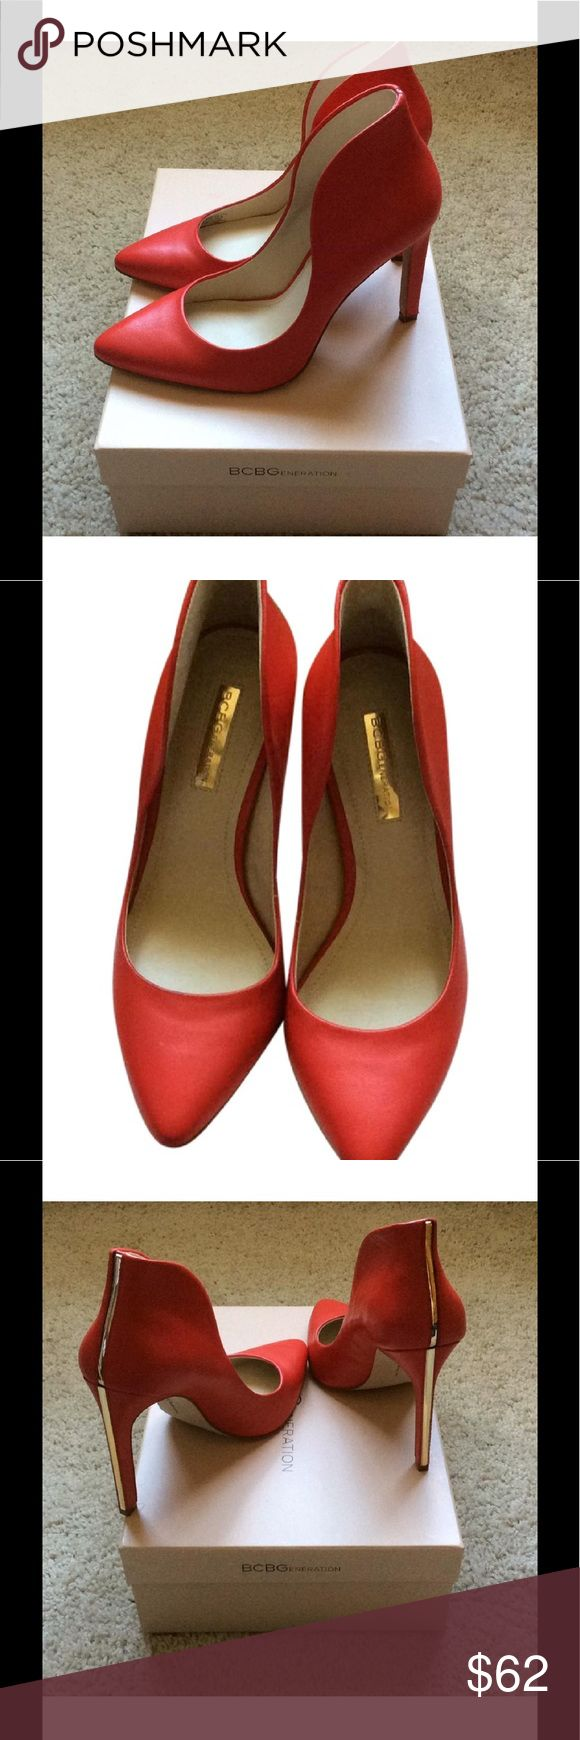 BCBG PUMPS HEELS BCBGENERATION coral pumps with gold up heel of shoes. New!!!! Great shoes to coordinate with your summer outfit. BCBGeneration Shoes Heels